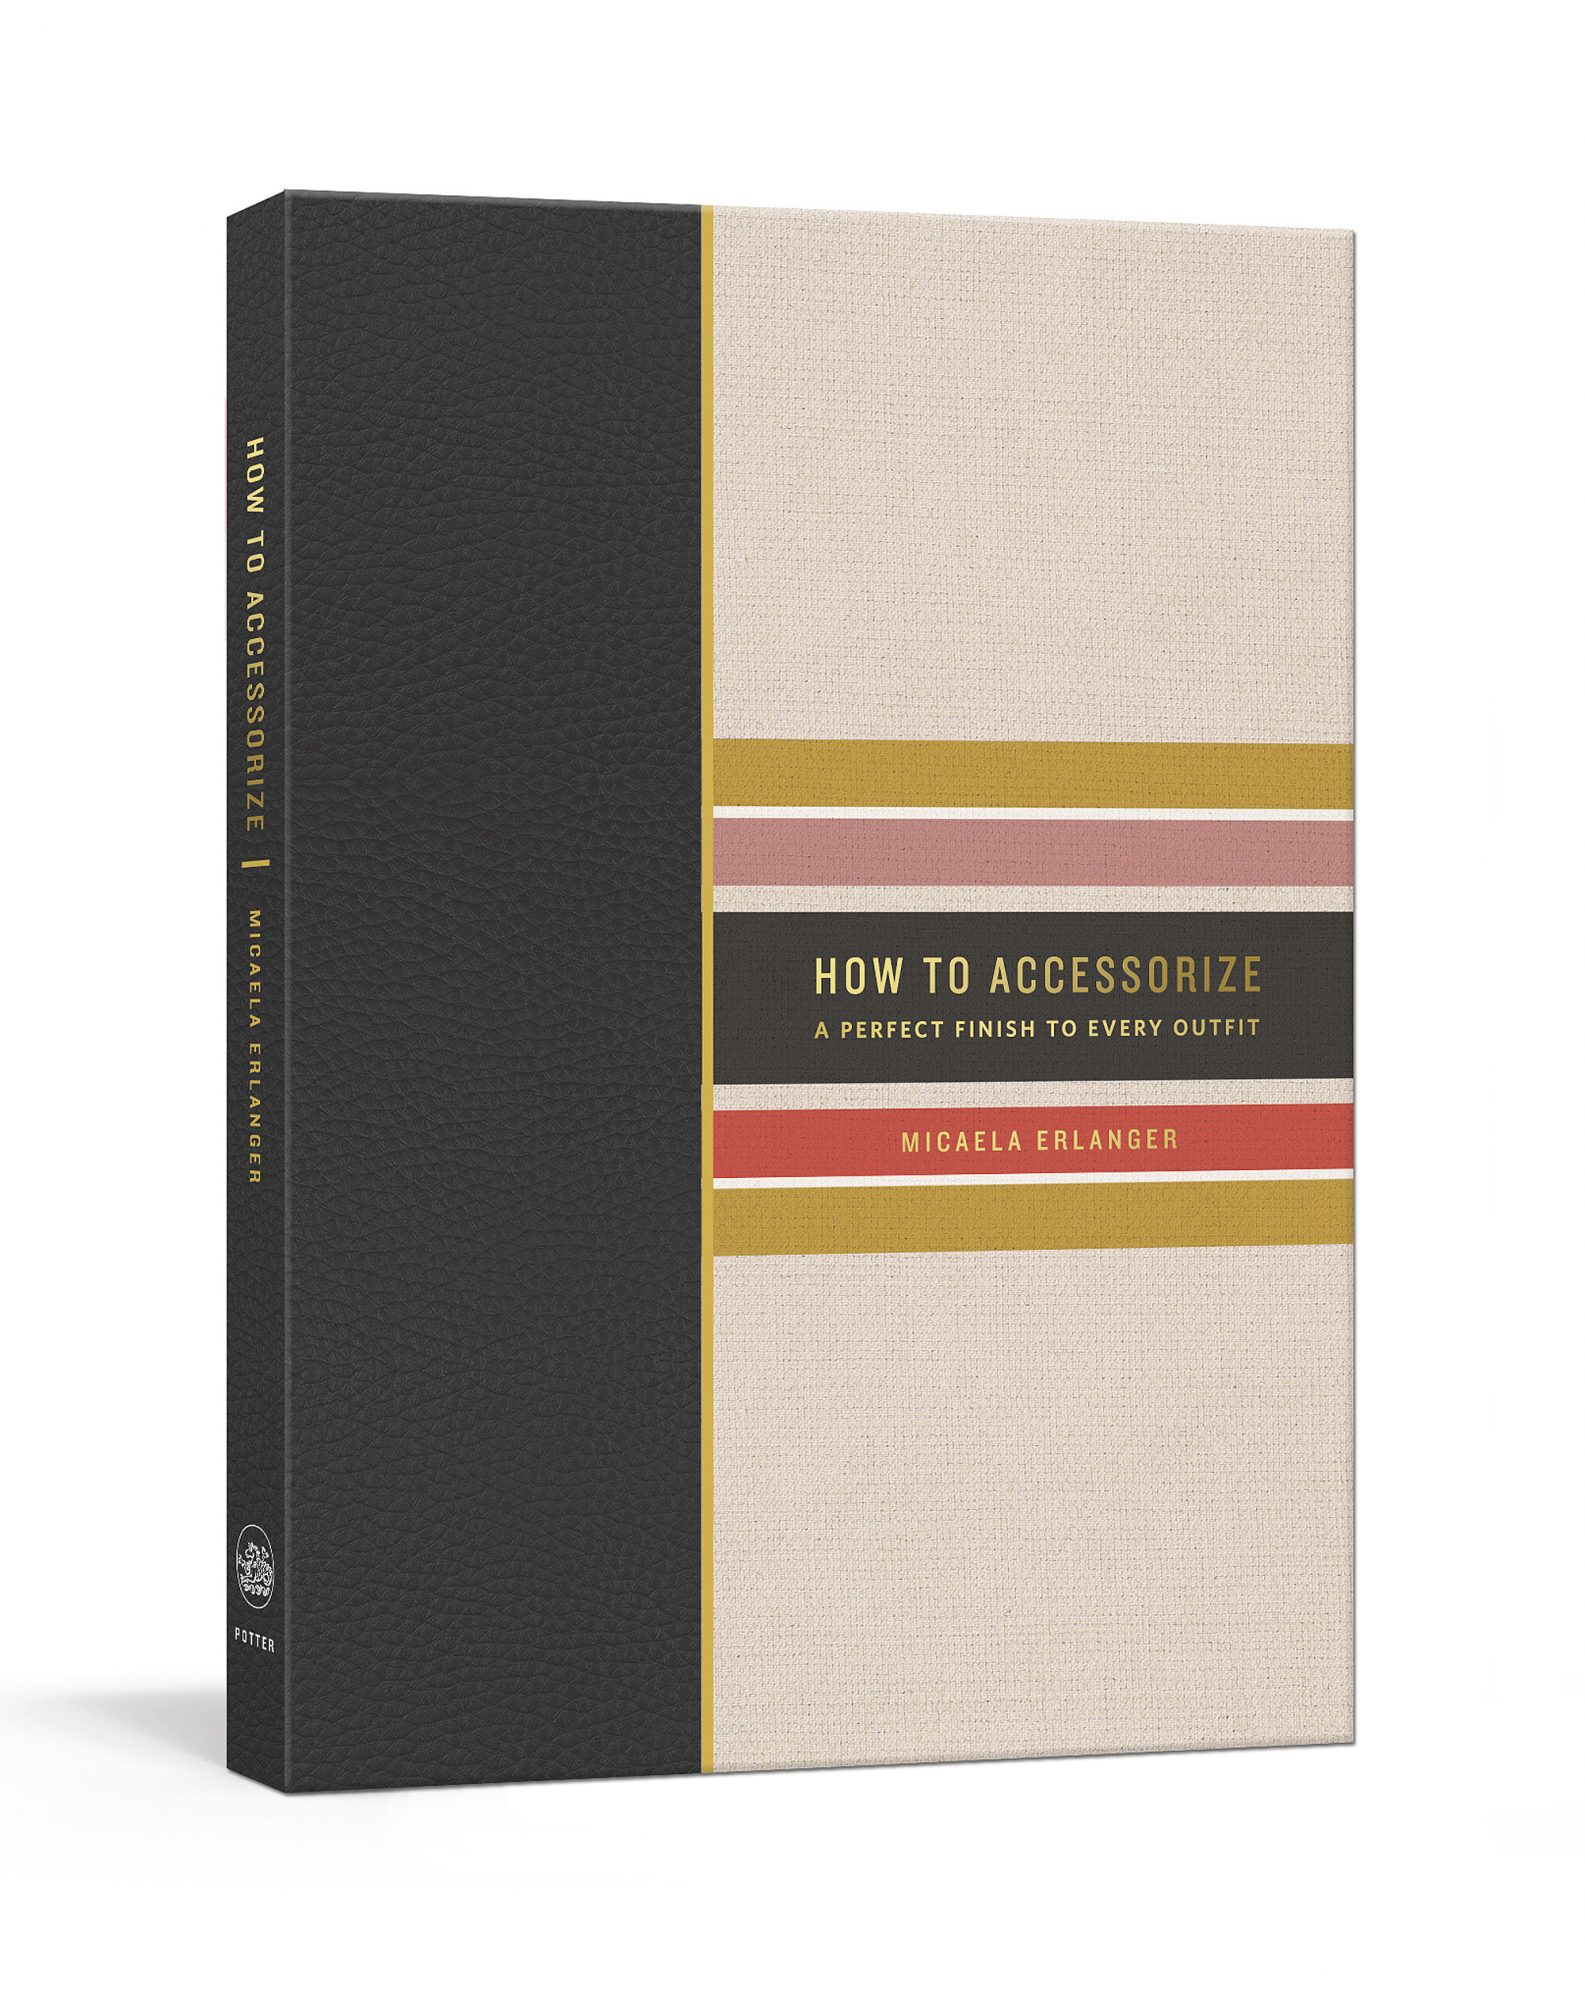 How to Accessorize Book Cover - Micaela ErlangerCourtesy of Clarkson Potter